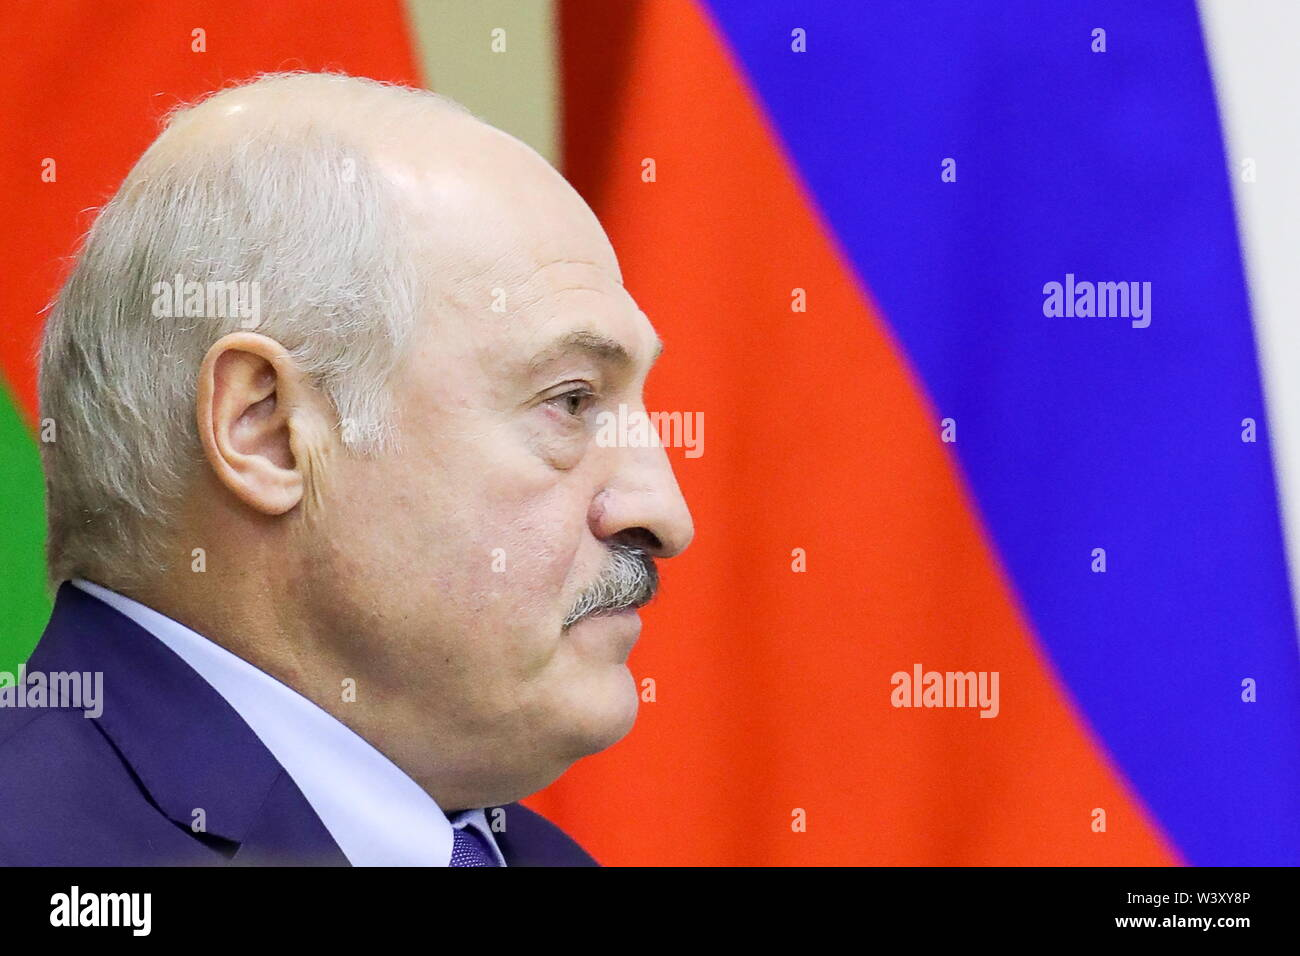 St Petersburg, Russia. 18th July, 2019. ST PETERSBURG, RUSSIA - JULY 18, 2019: Belarus' President Alexander Lukashenko during a meeting with Russia's President Vladimir Putin during a meeting at Tauride Palace. Mikhail Klimentyev/Russian Presidential Press and Information Office/TASS Credit: ITAR-TASS News Agency/Alamy Live News - Stock Image